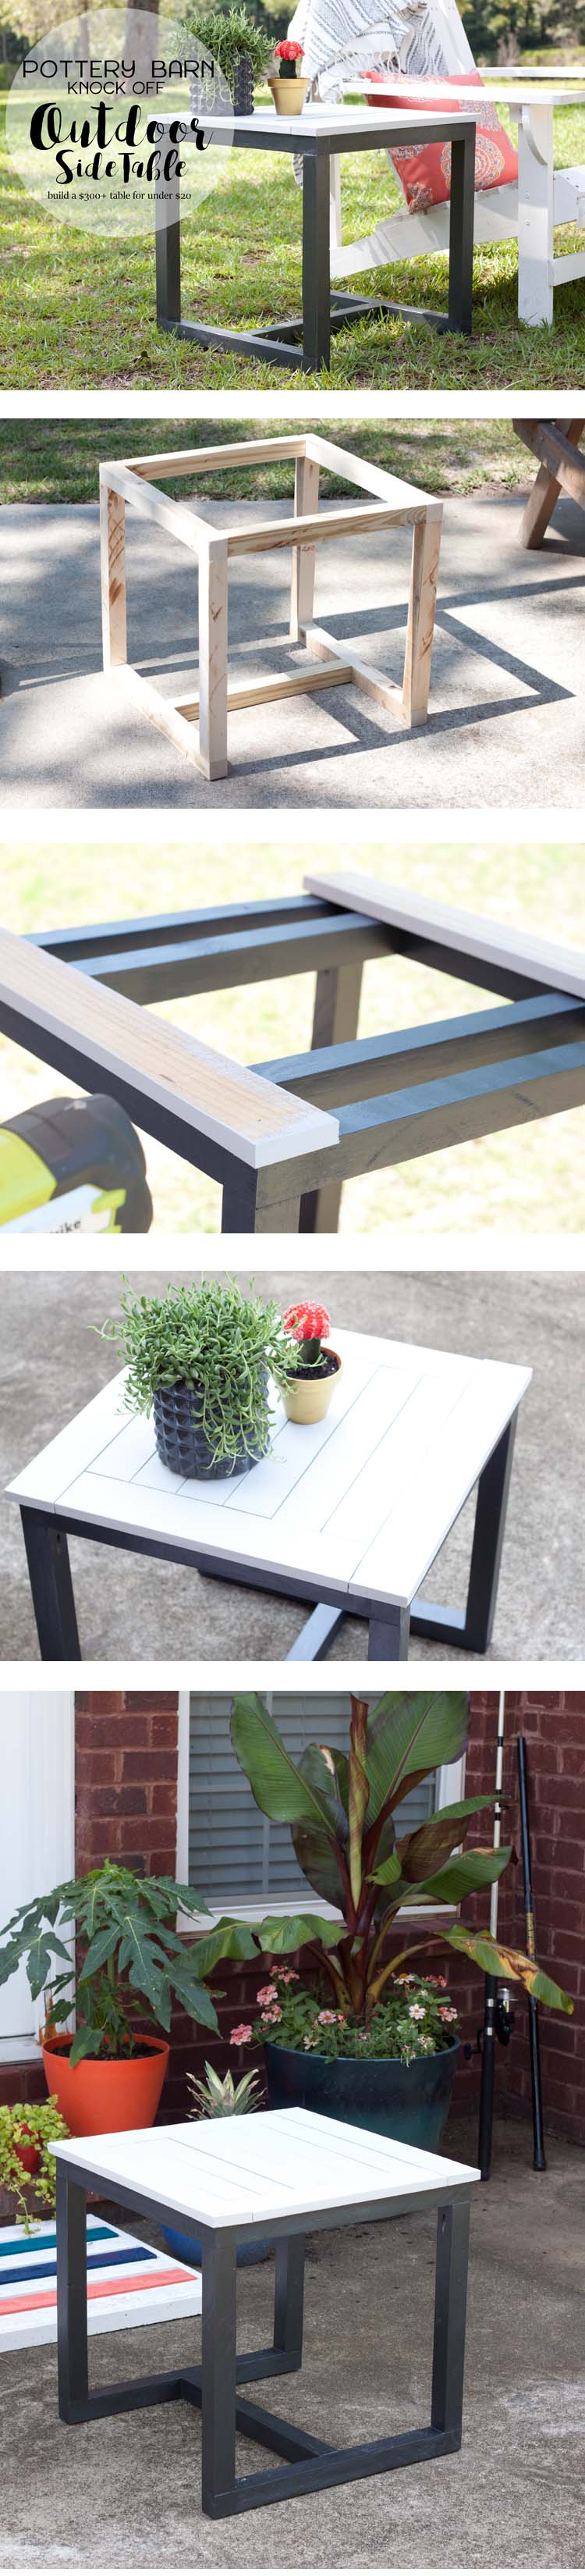 diy outdoor side table pottery barn knockoff carmen knock off jamie accent washing machines mirrored coffee with storage sage green kitchen coastal lamps affordable living room